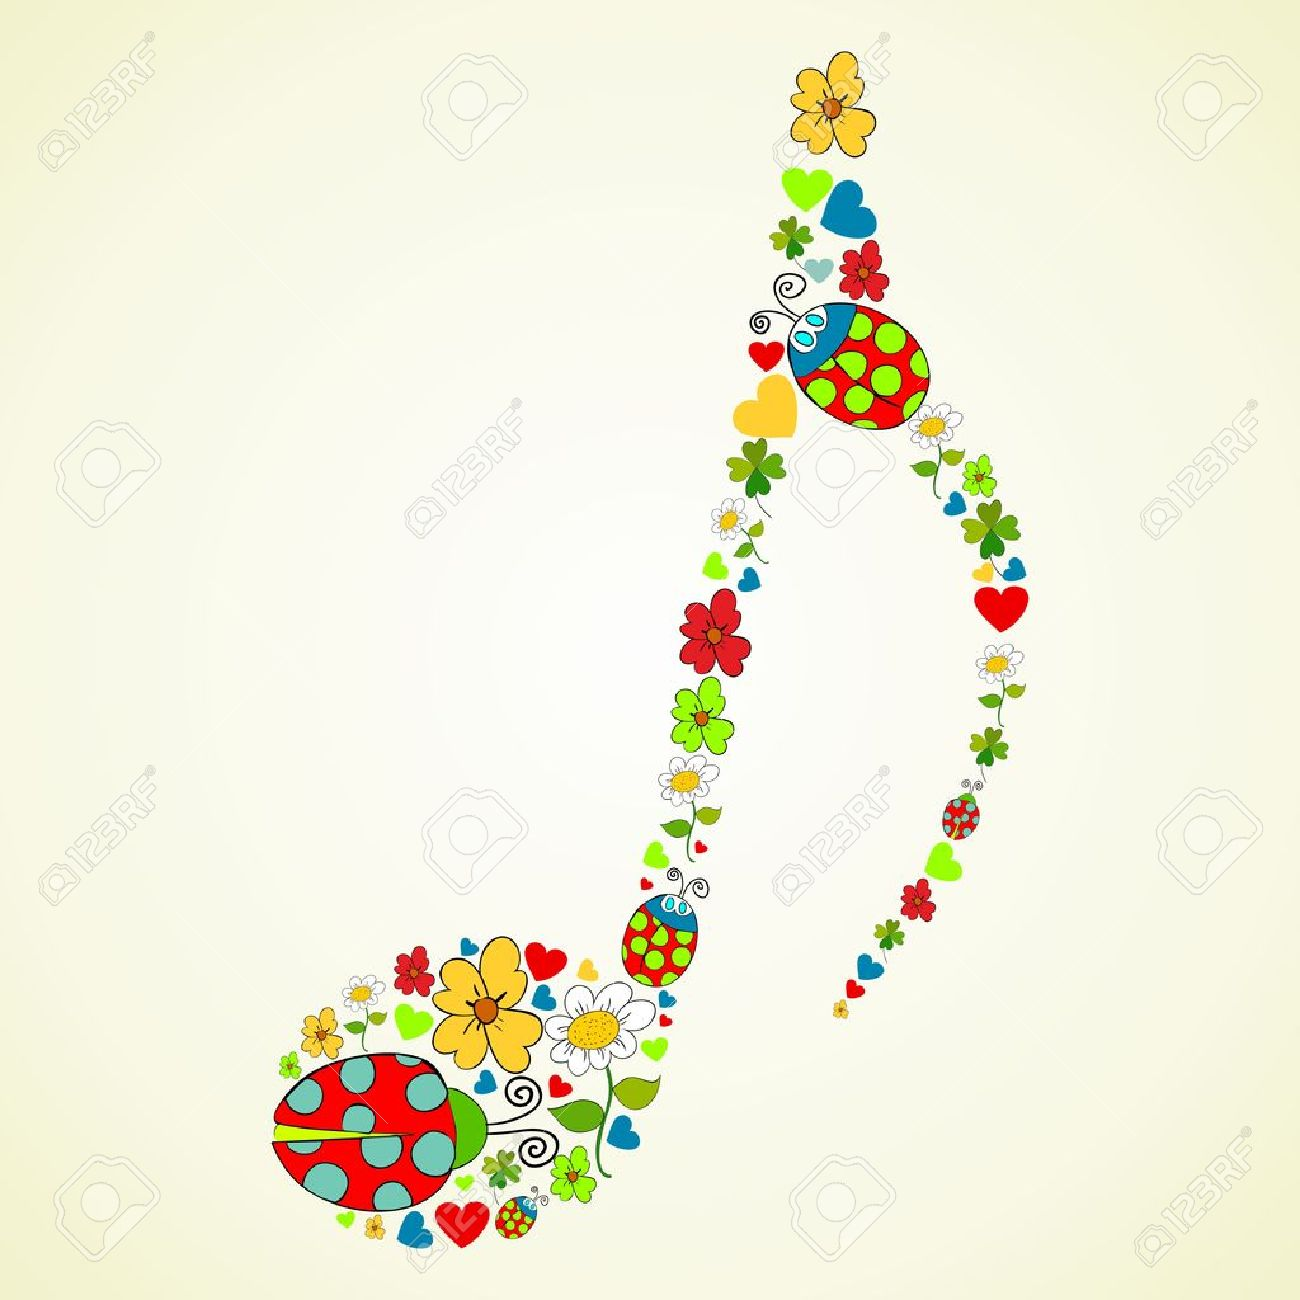 colorful spring icons texture in music note shape composition